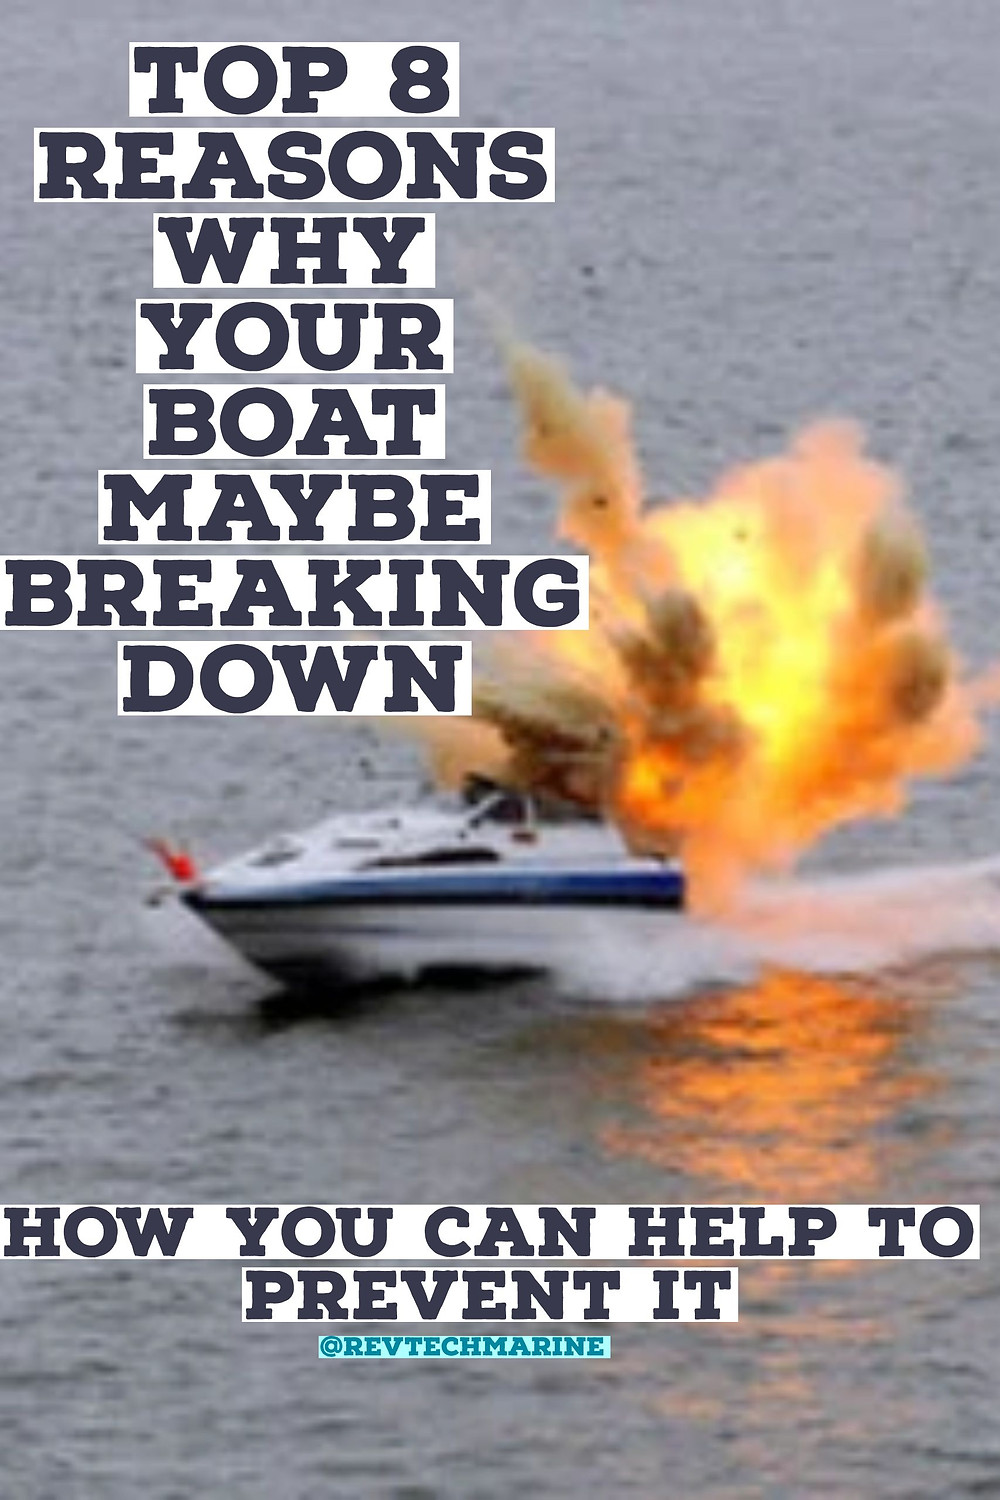 Top 8 Reasons Your Boat Maybe Breaking Down